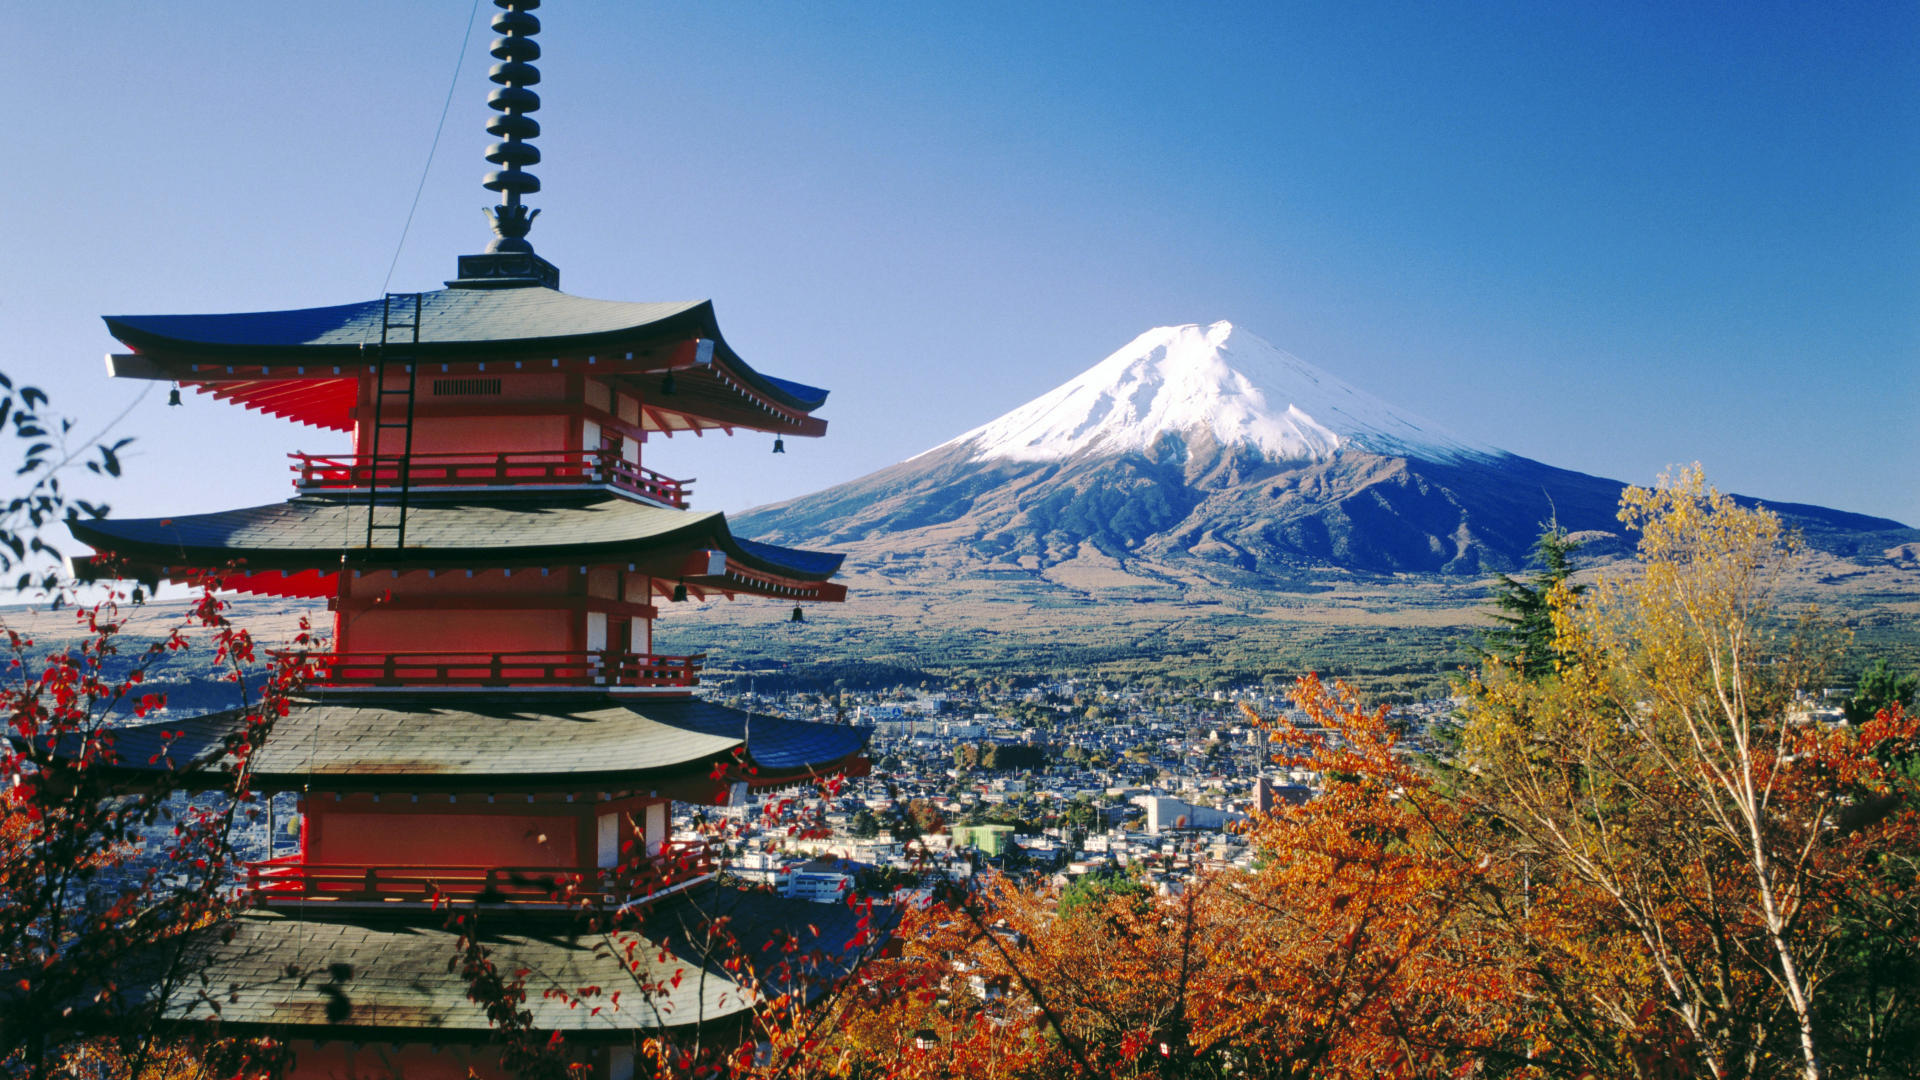 Fujiyoshida and Mount Fuji. Japan